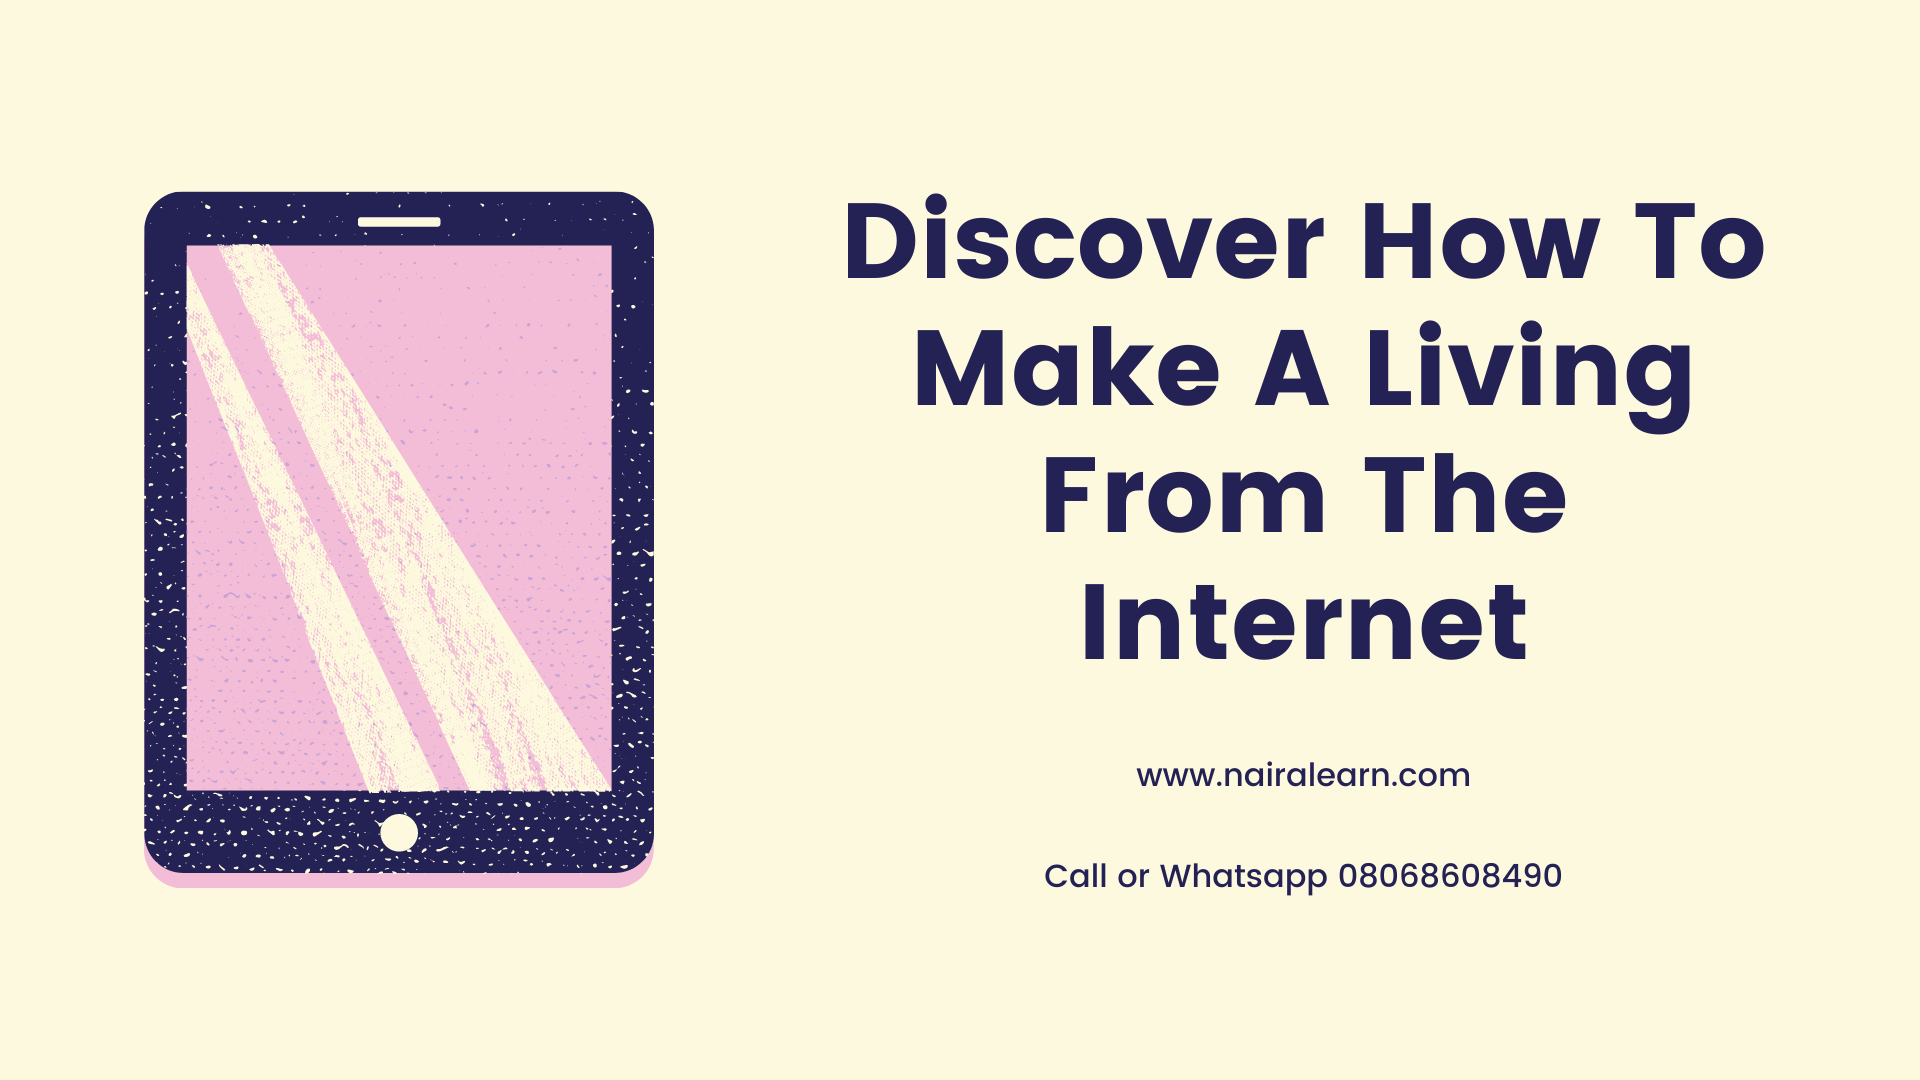 Discover How To Make A Living From The Internet